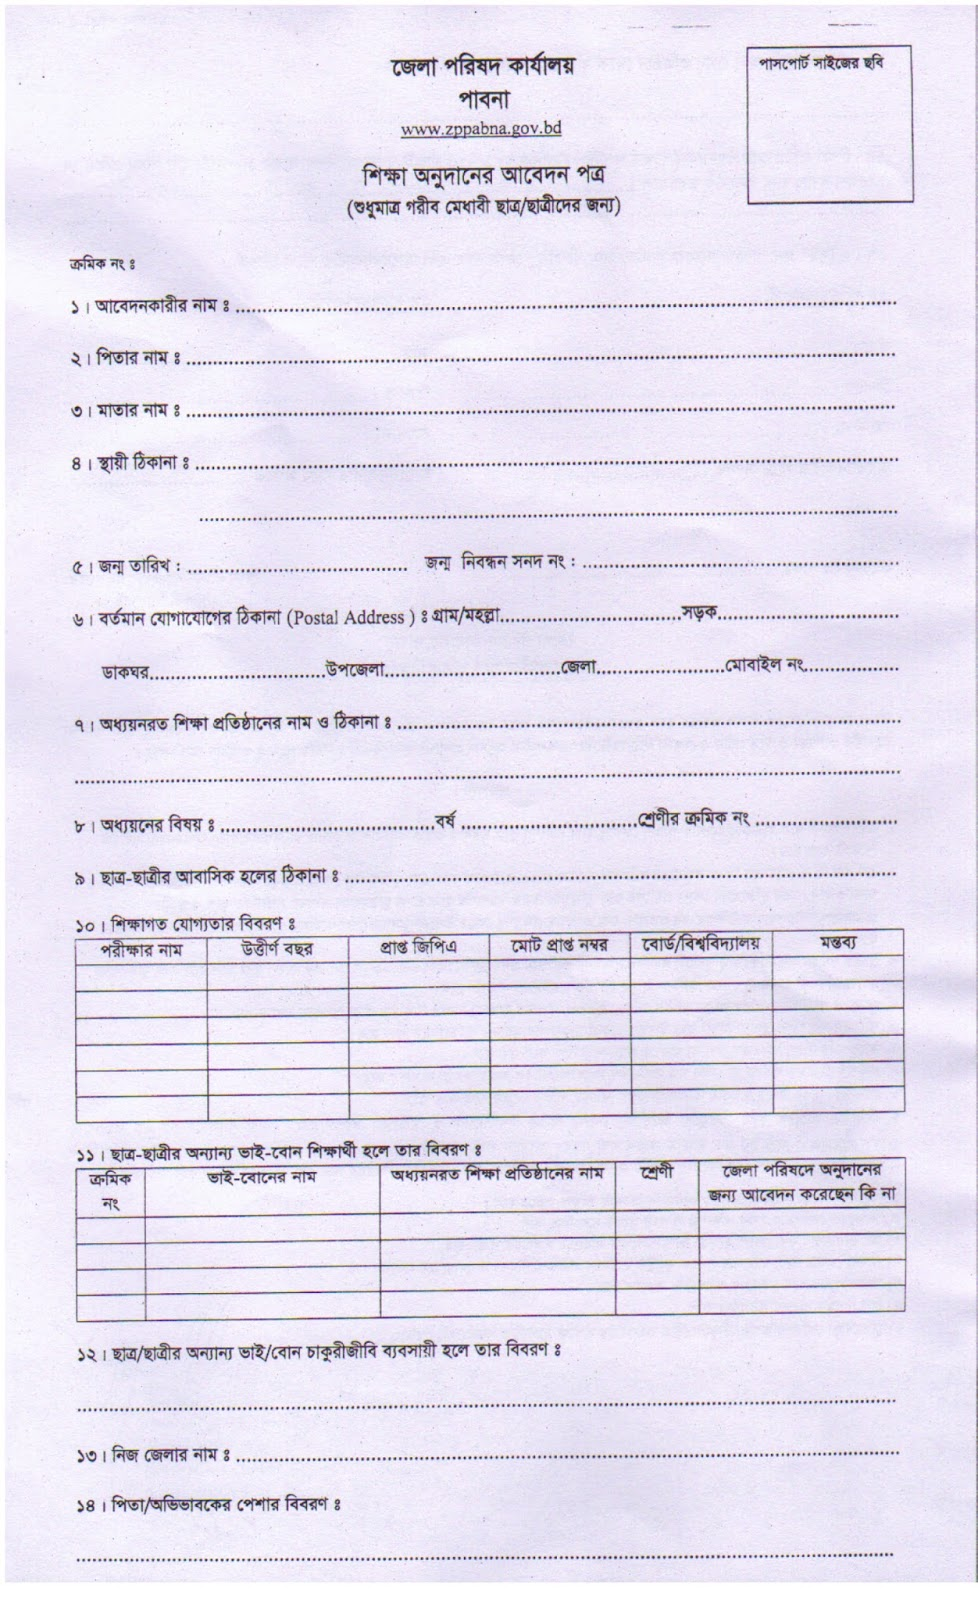 Pabna Zilla Parishad Scholarship Application Form